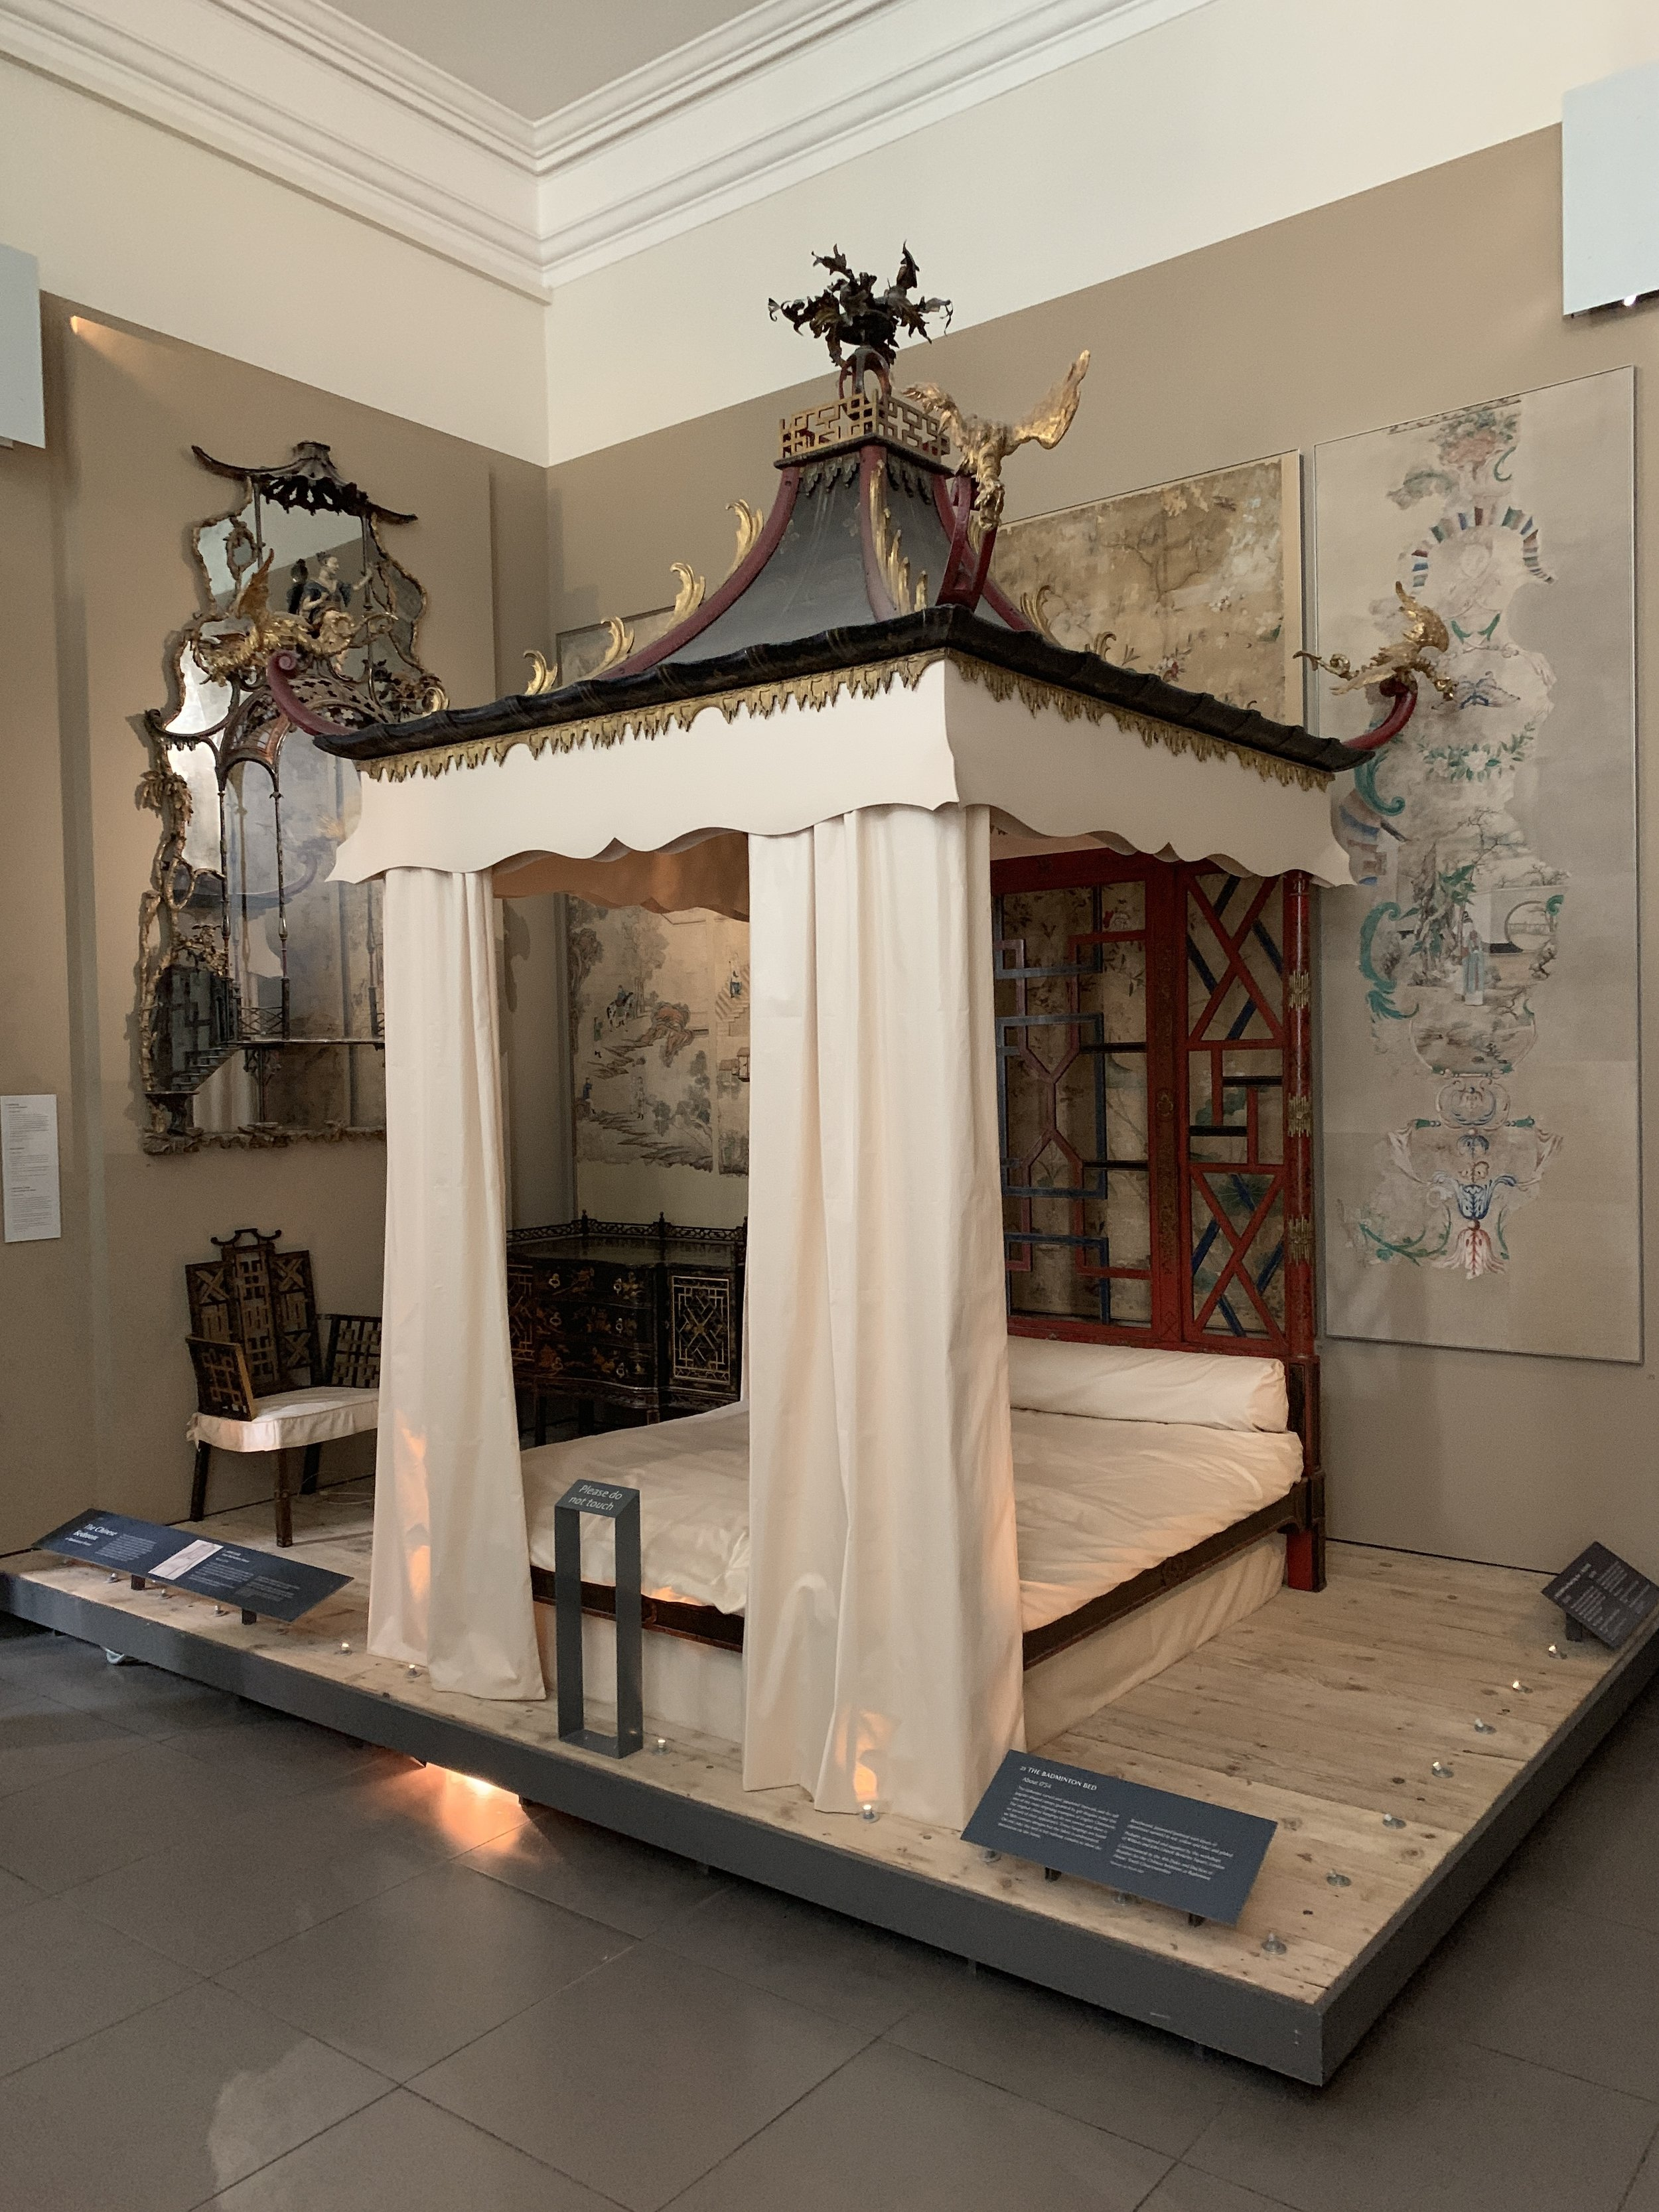 The Badminton Bed at the V&A, so named because the Badmintons played a novel version of shuttlecock in it that became the rage. ;-)